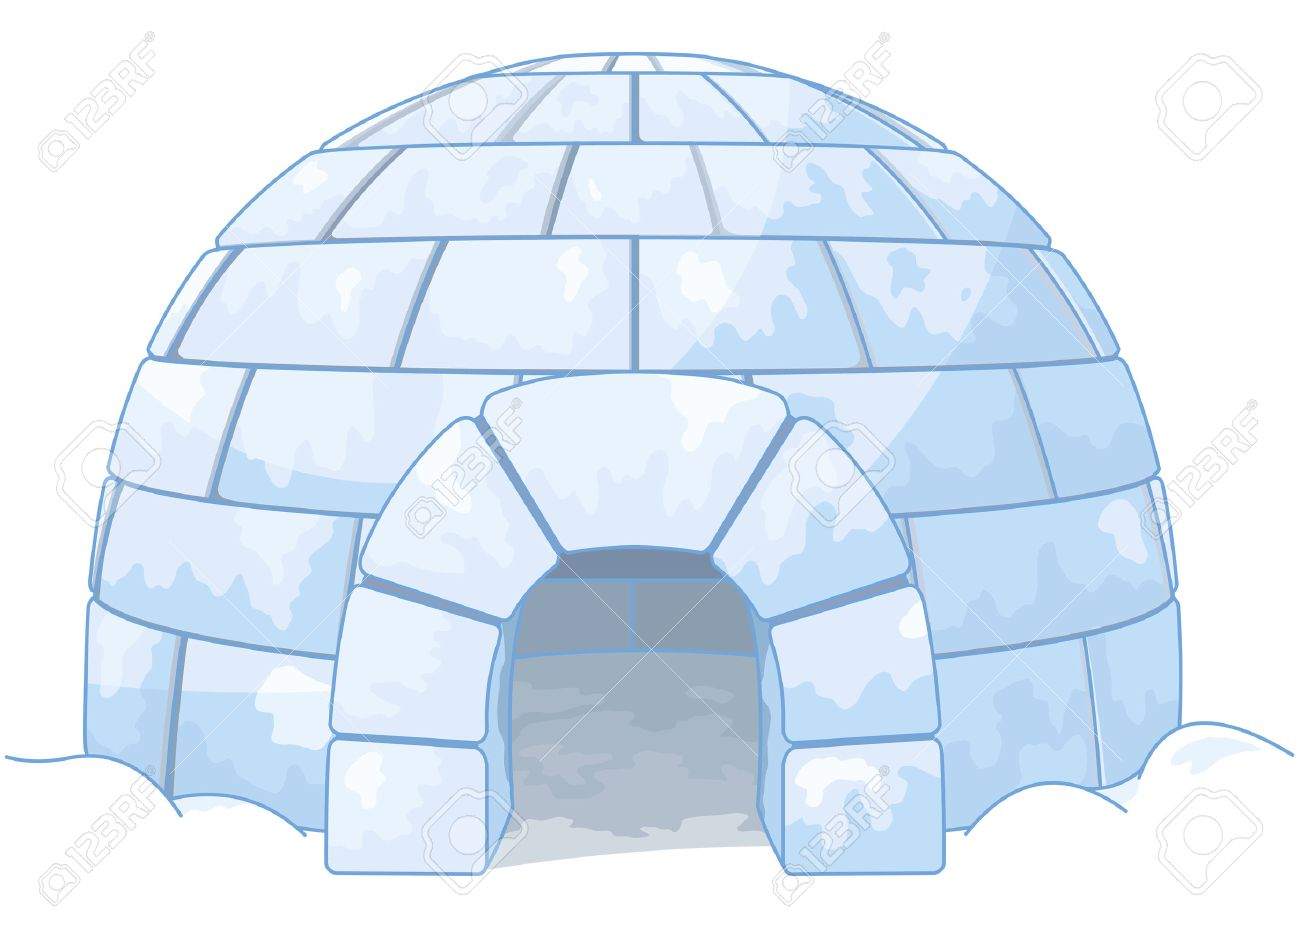 illustration of an igloo royalty free cliparts vectors and stock